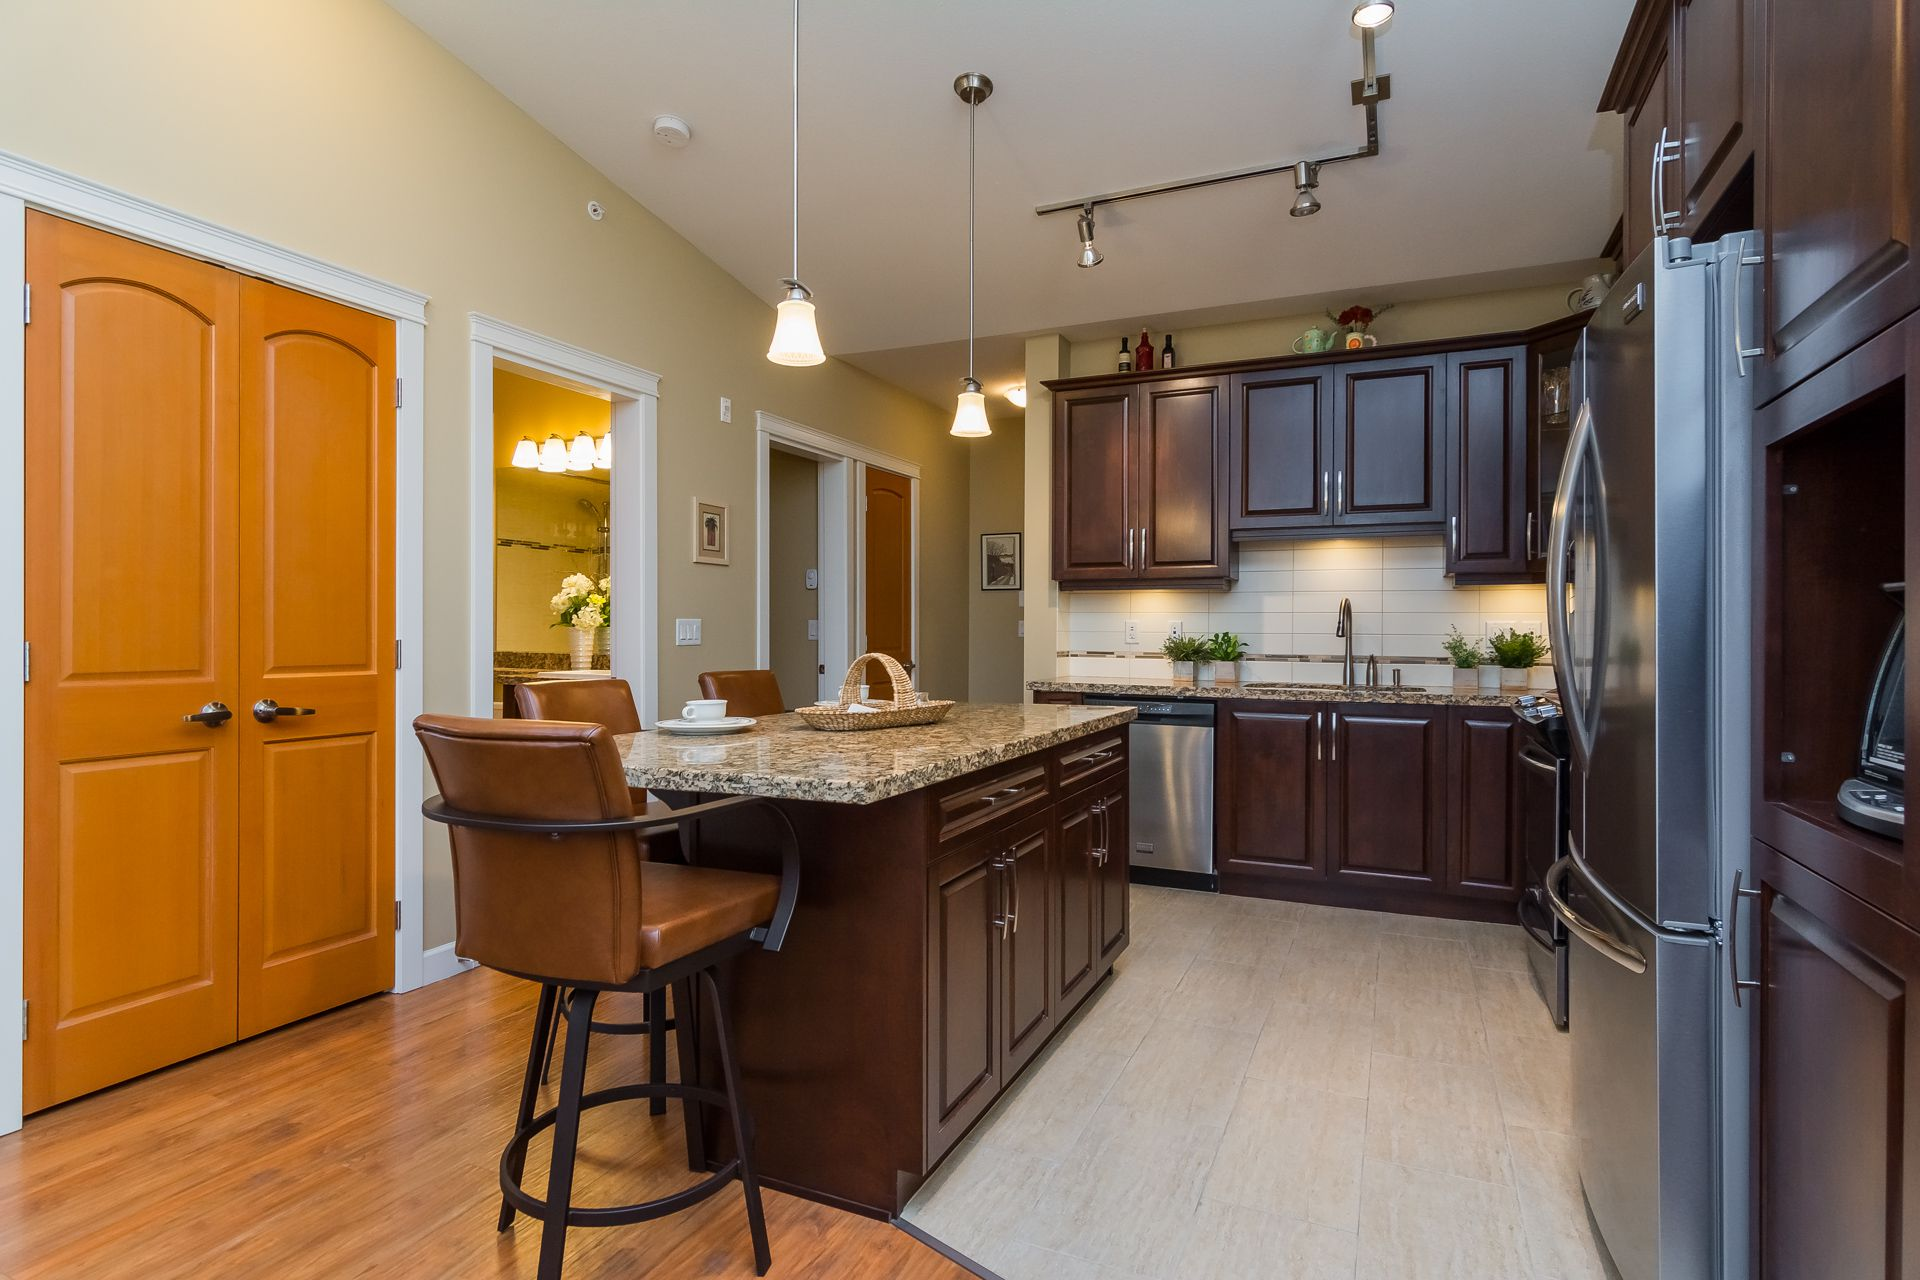 """Photo 14: Photos: 509 8258 207A Street in Langley: Willoughby Heights Condo for sale in """"YORKSON CREEK (BLG A)"""" : MLS®# R2221052"""